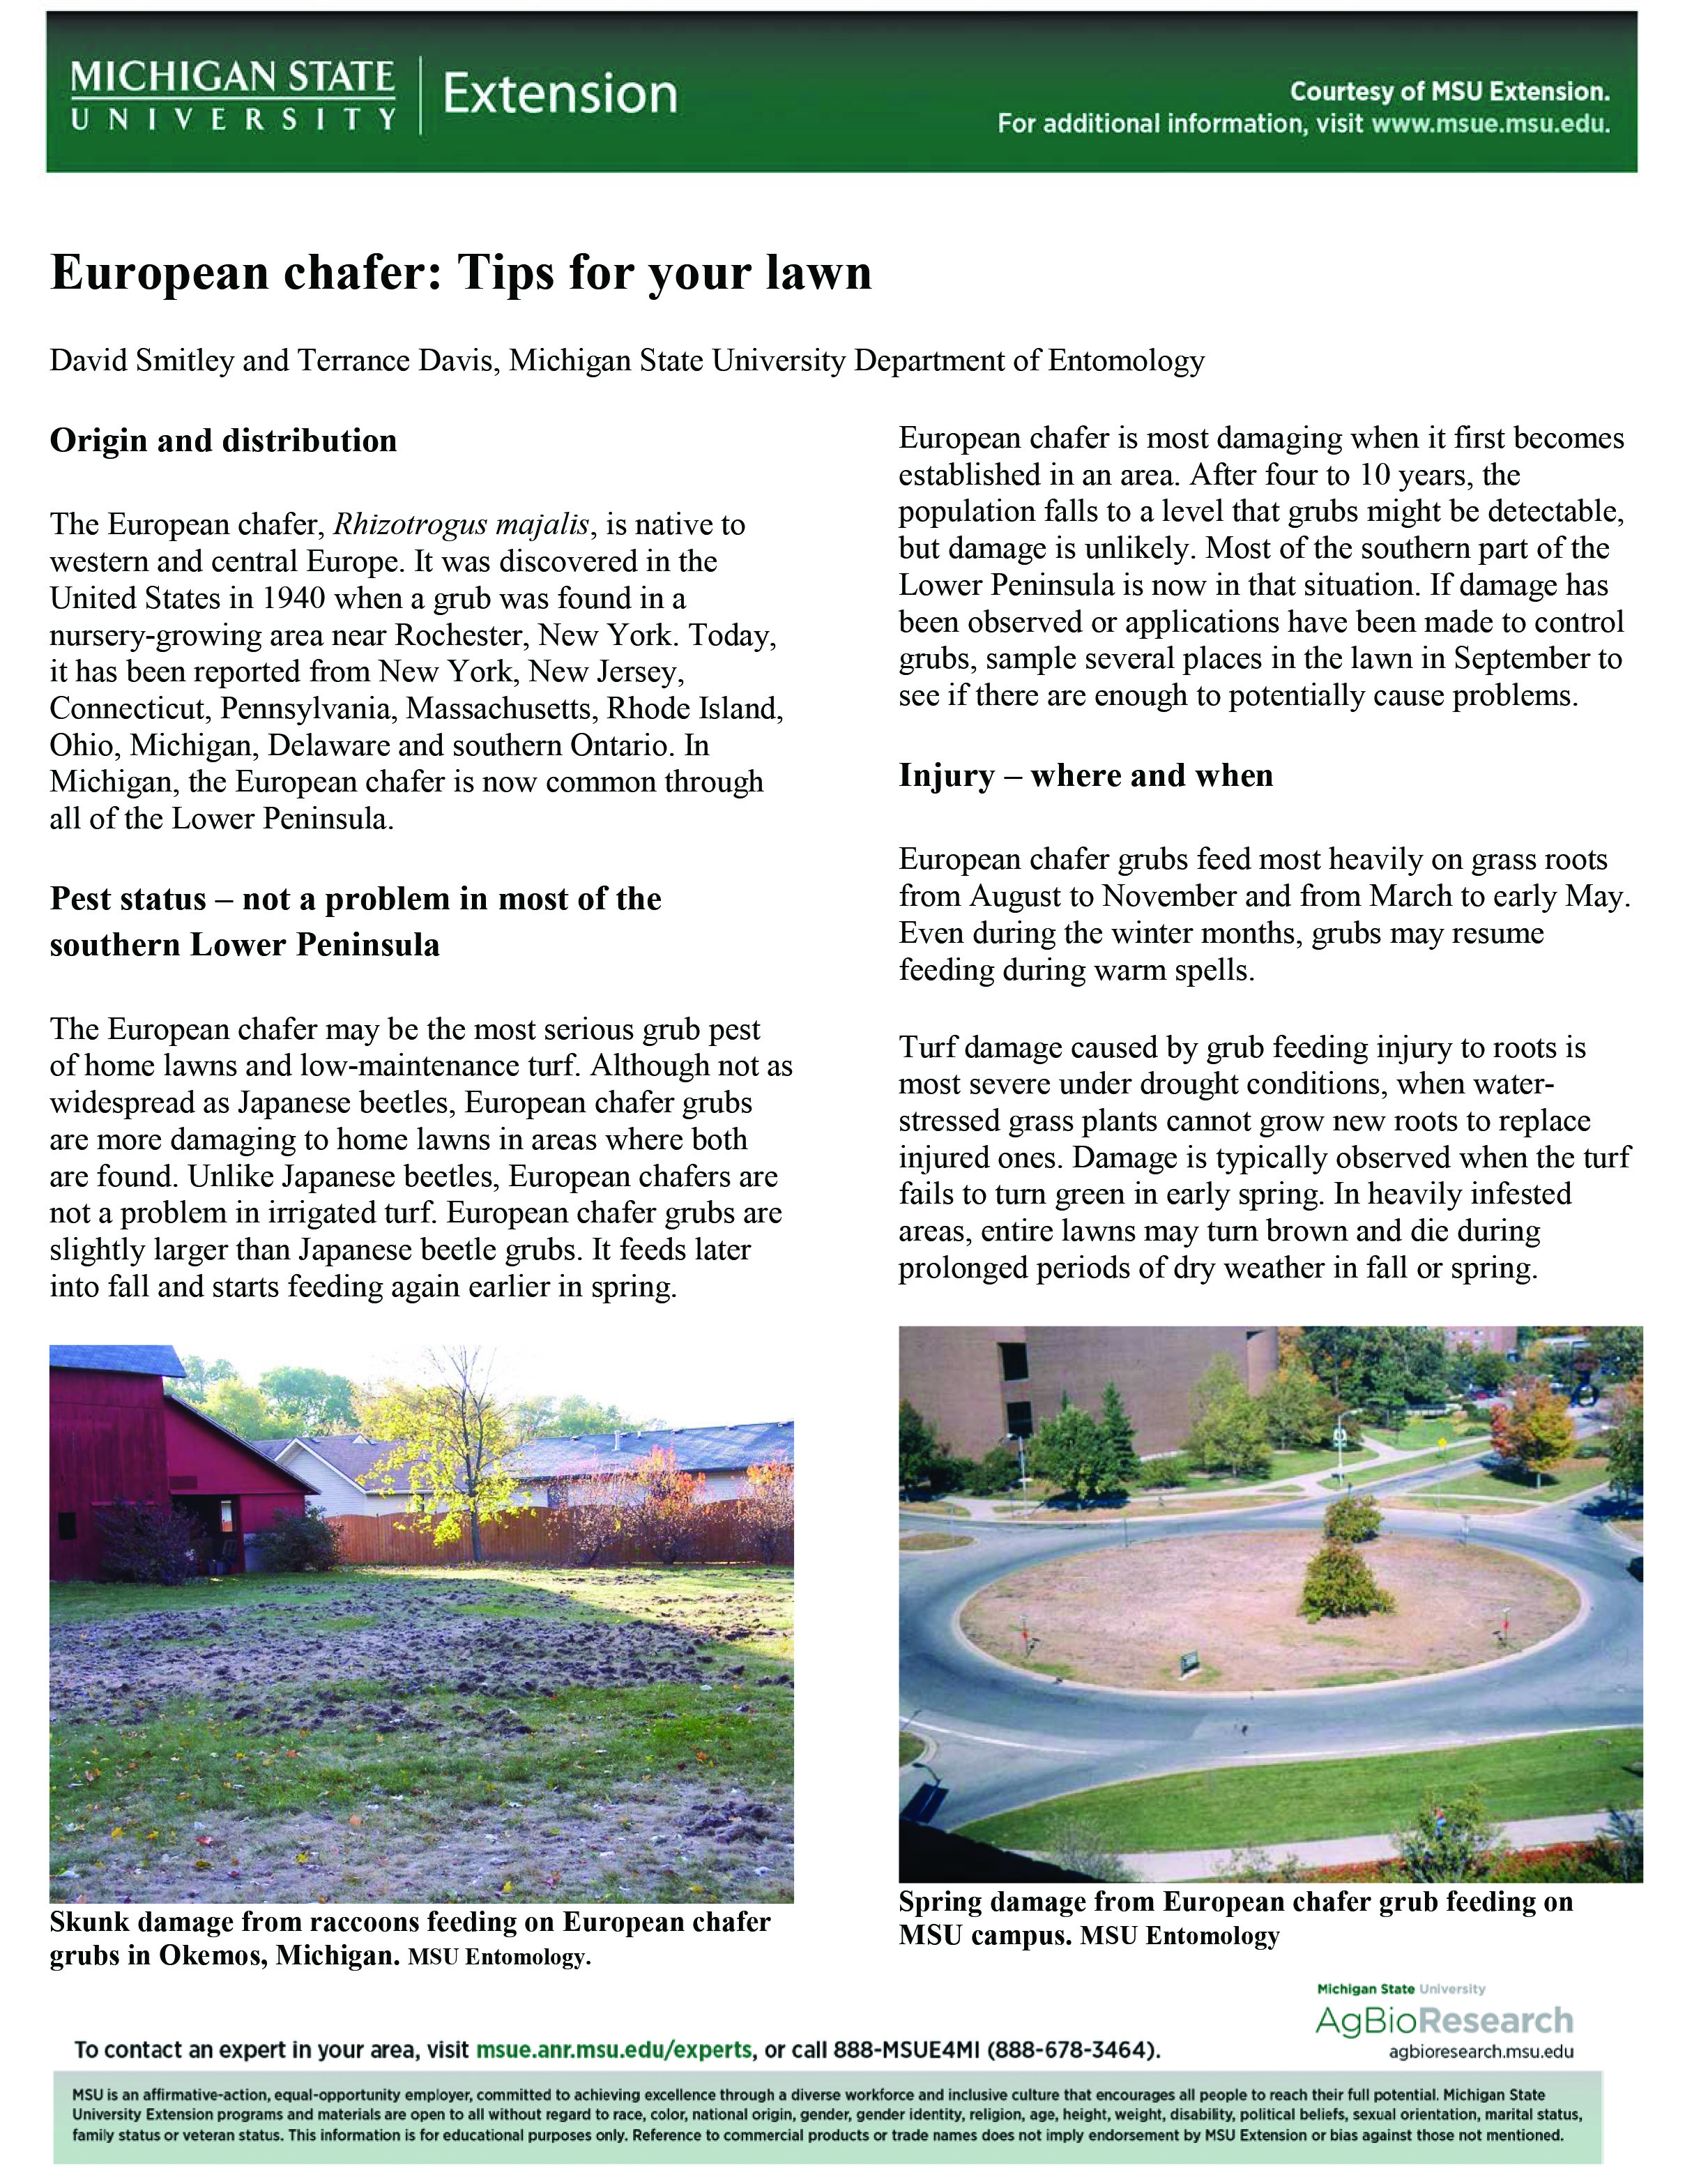 European chafer: Tips for your lawn